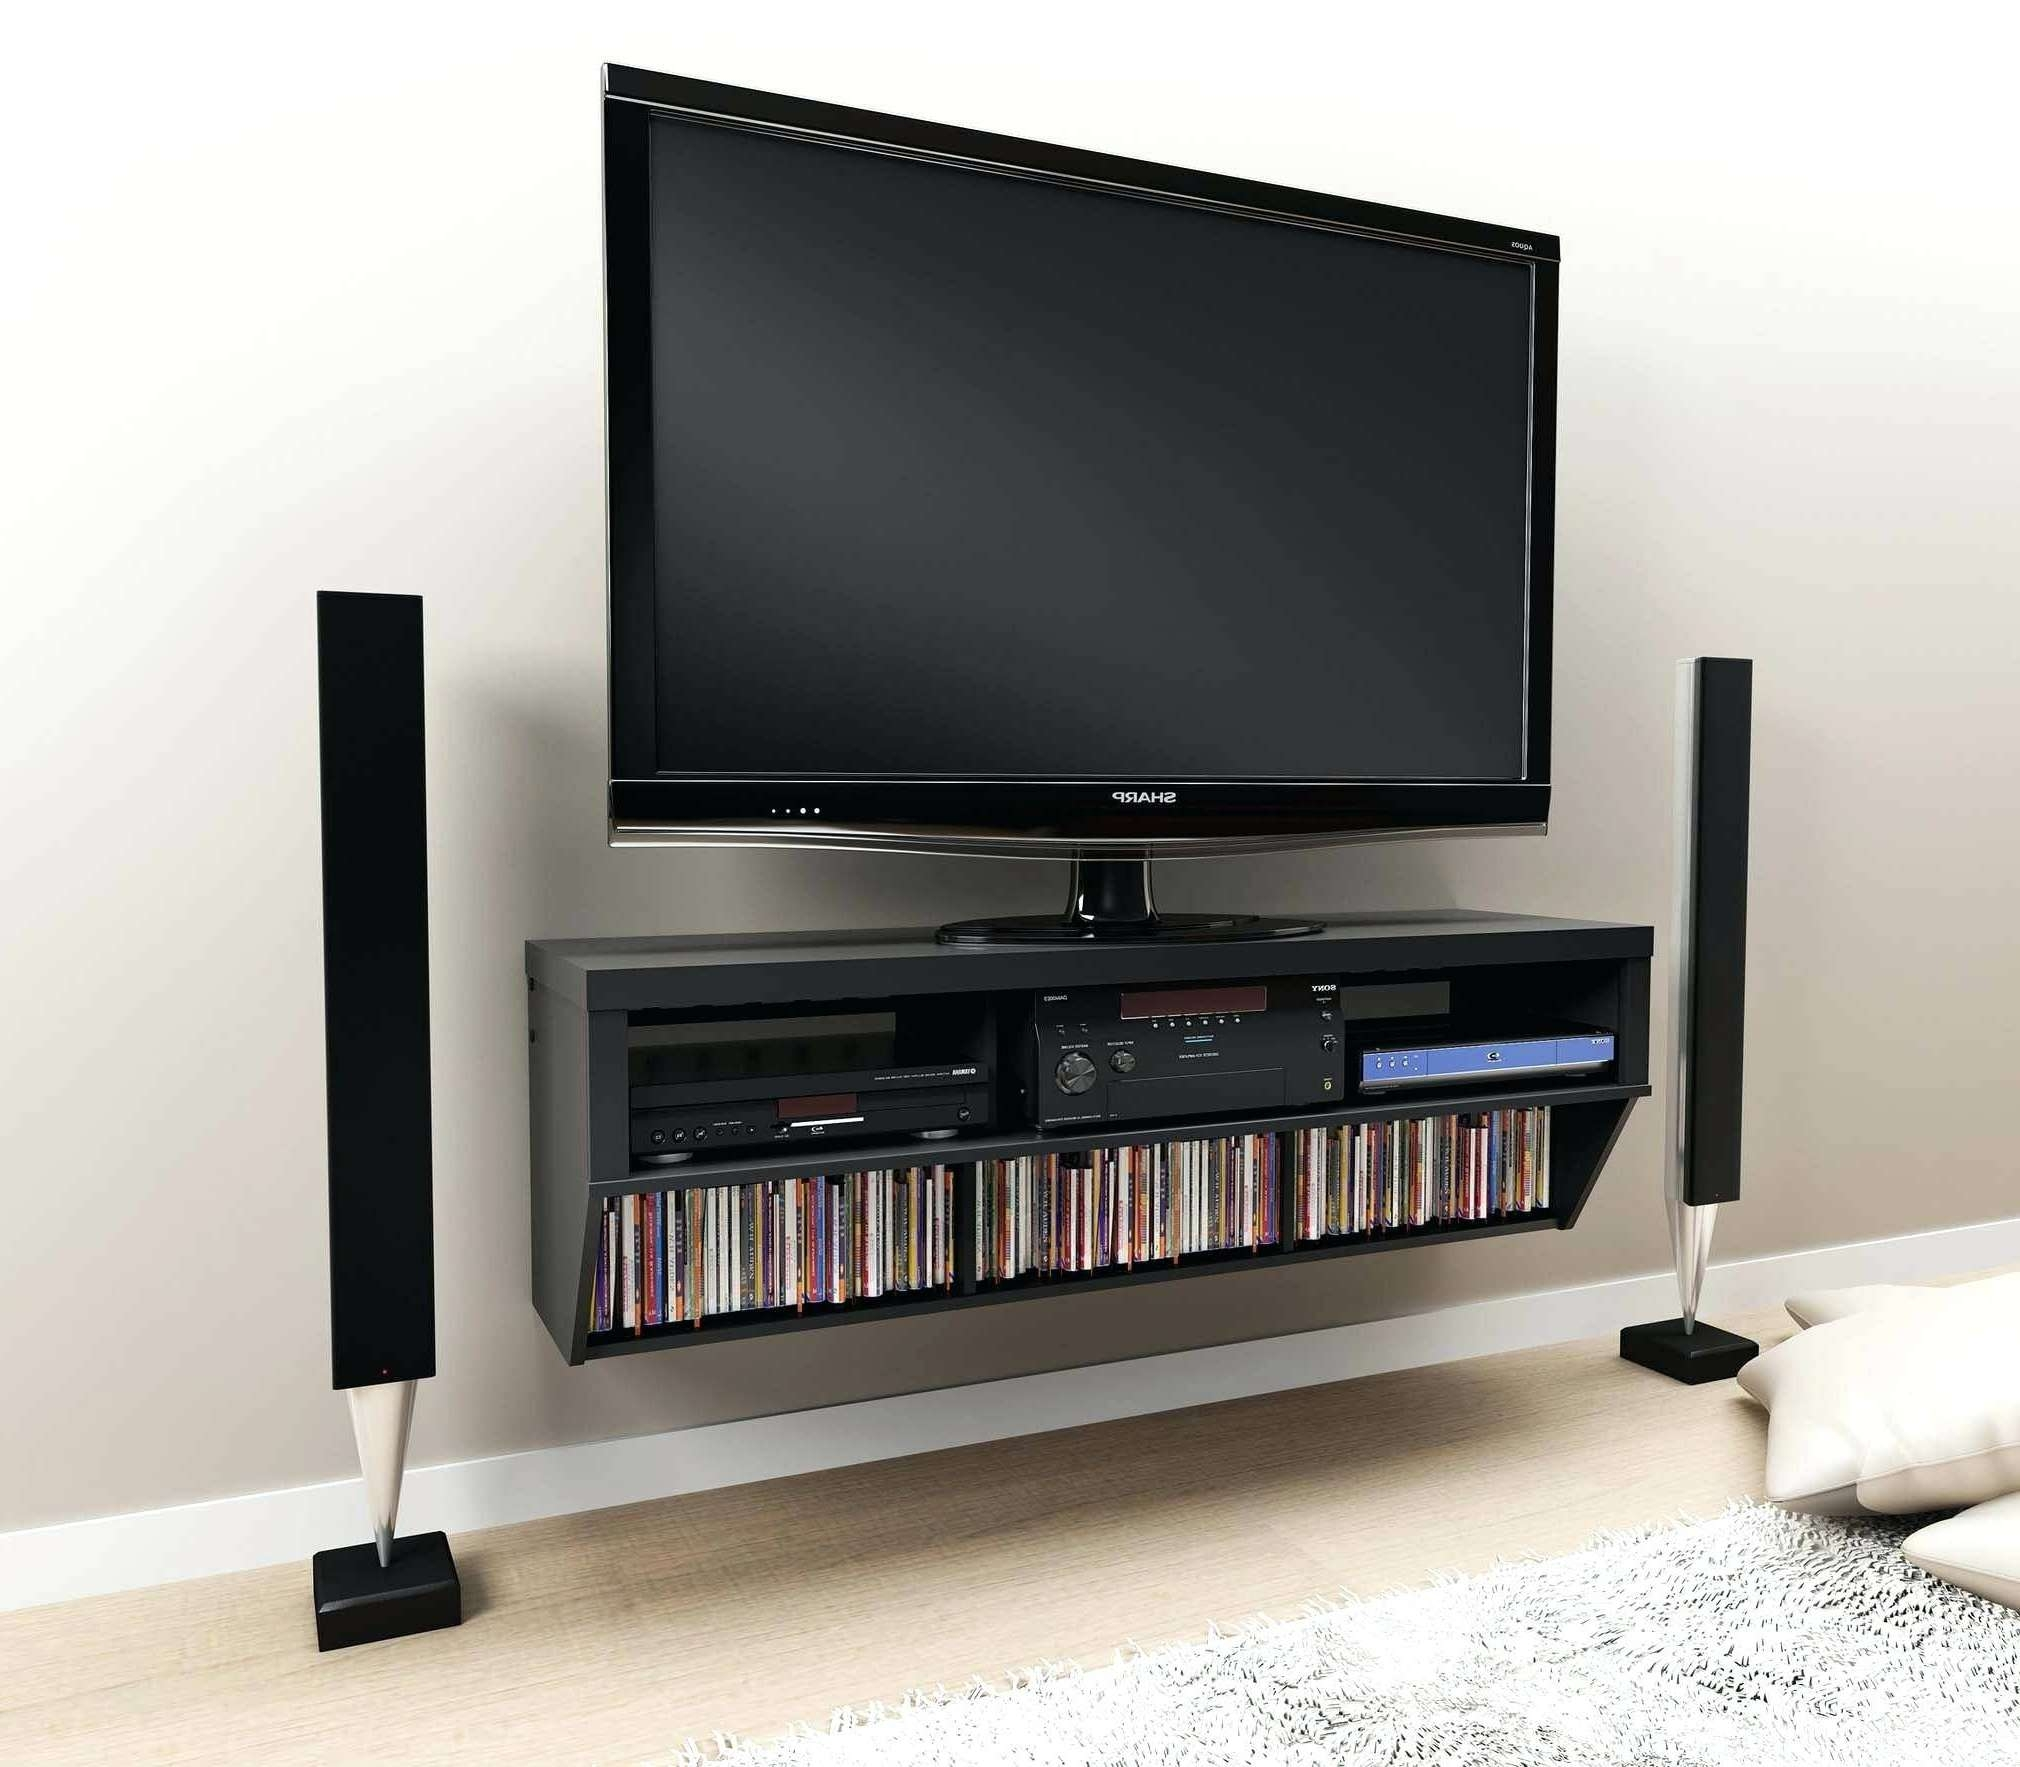 Surprising Unusual Tv Stands 44 Modern Tv Stand Designs For Inside Unusual Tv Stands (View 10 of 15)